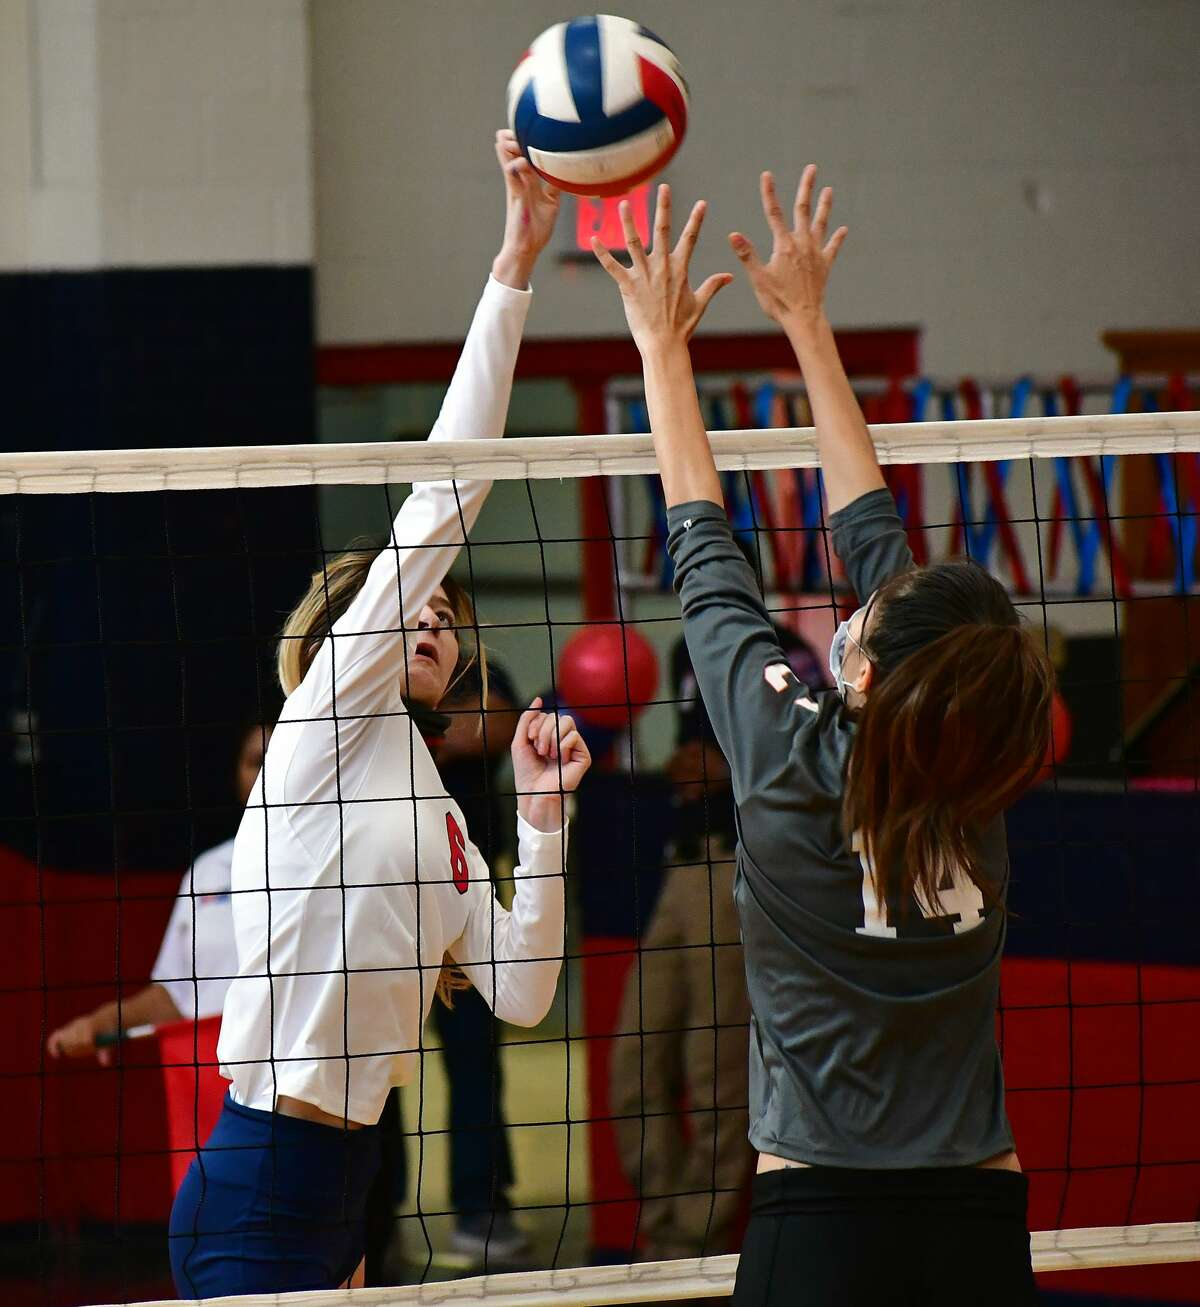 The Plainview volleyball team overcame a 2-1 deficit to defeat Amarillo Caprock in five sets in their District 3-5A high school volleyball game on Saturday, Oct. 3, 2020 in the Dog House at Plainview High School.